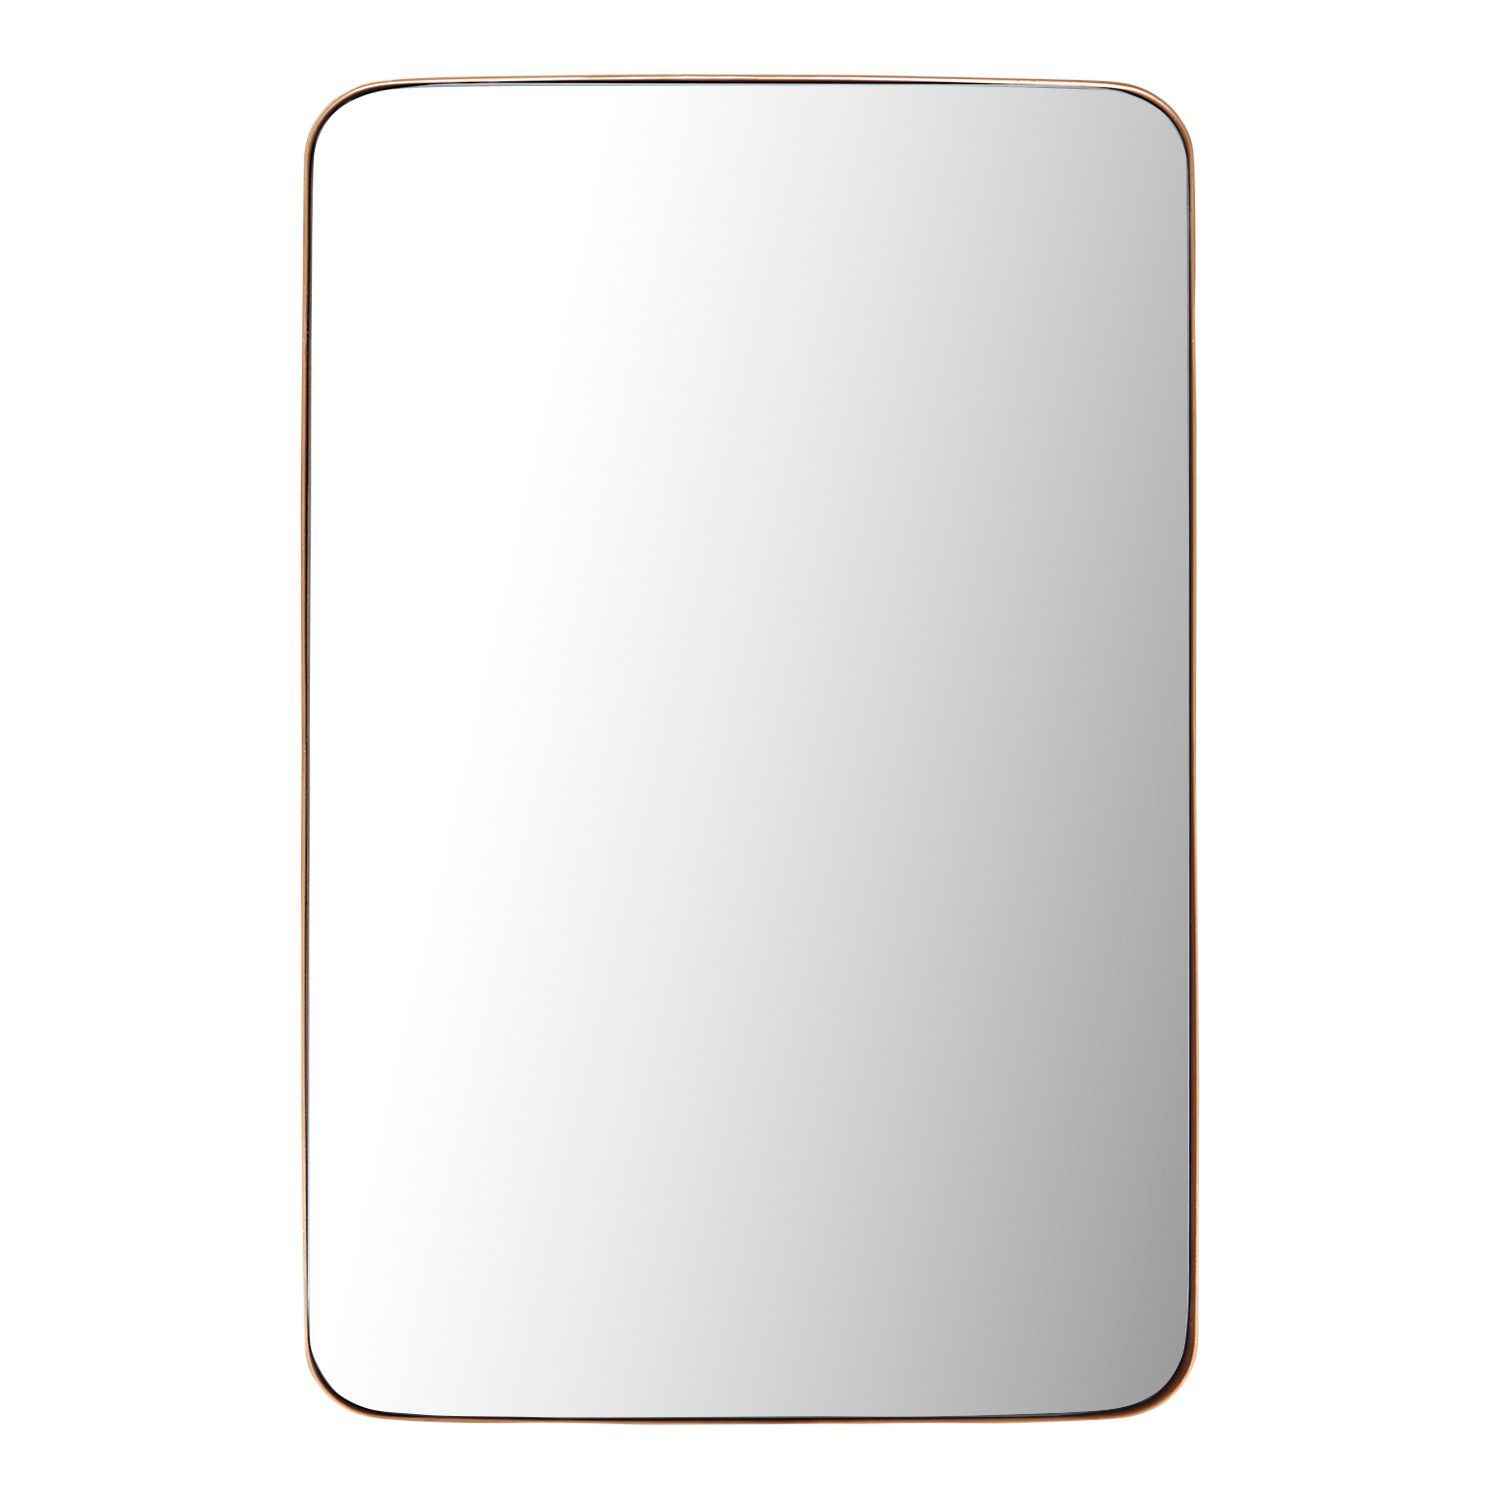 Golden Rounded Edge Mirror